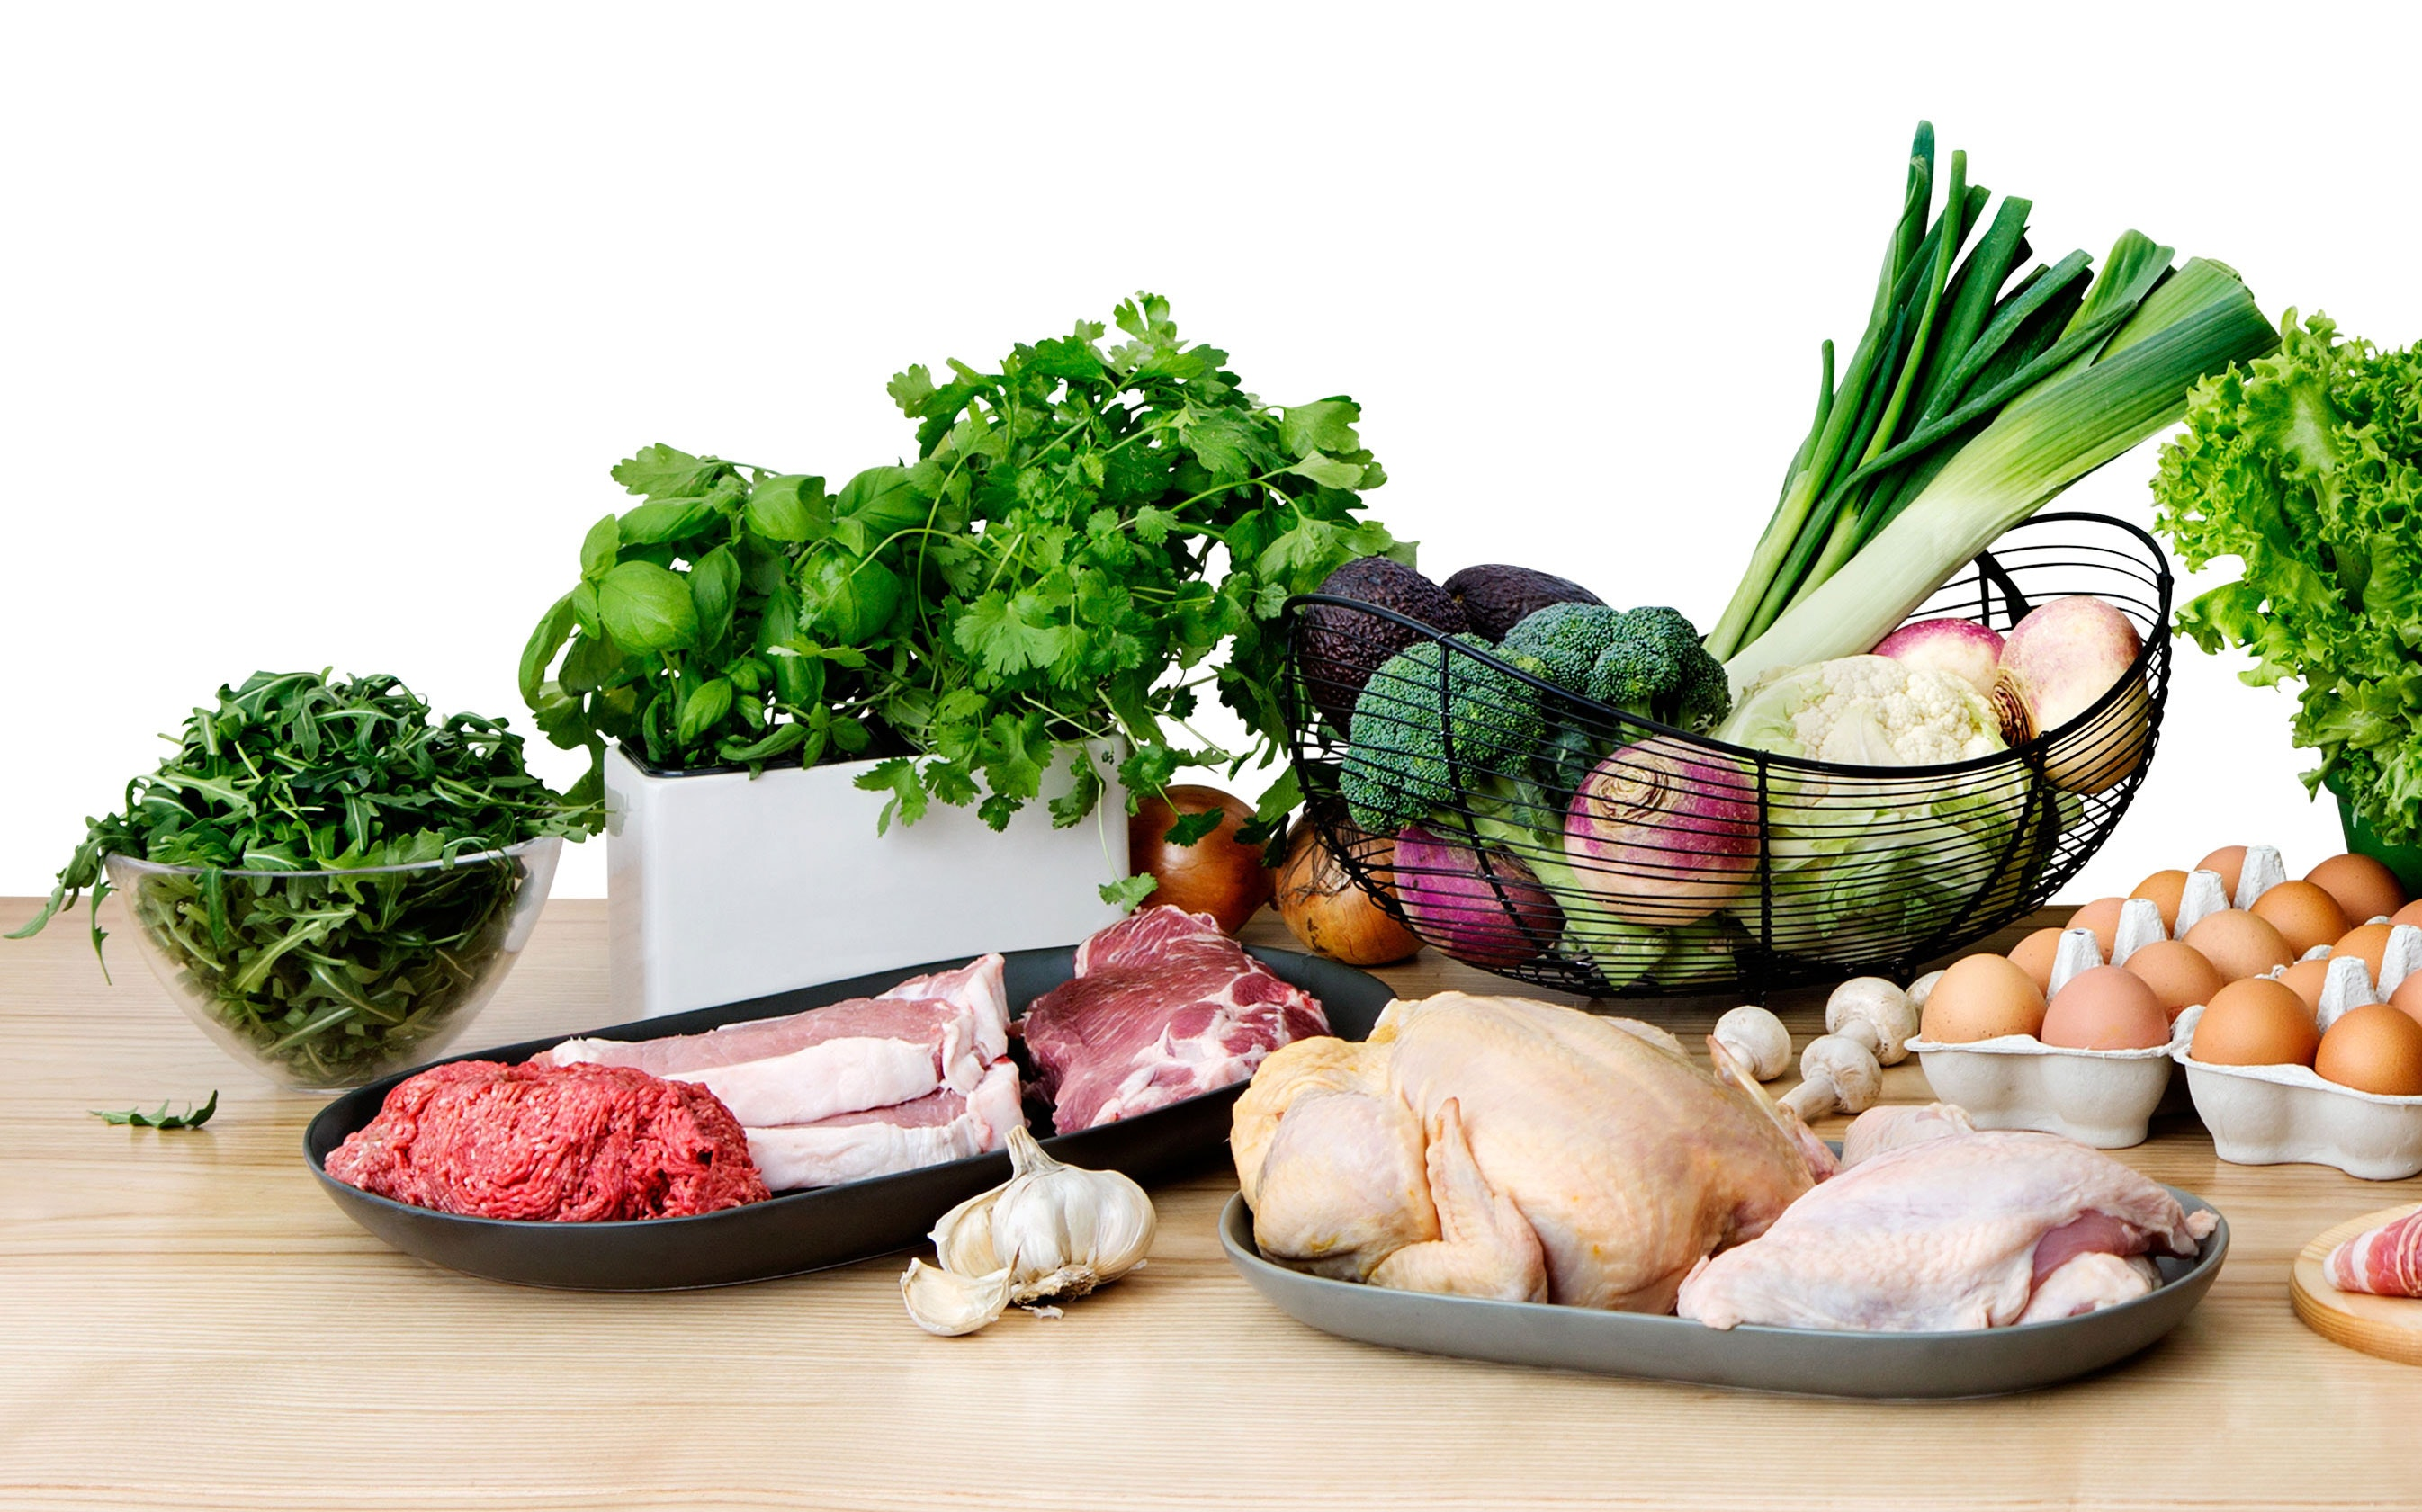 What meat can i eat on keto diet